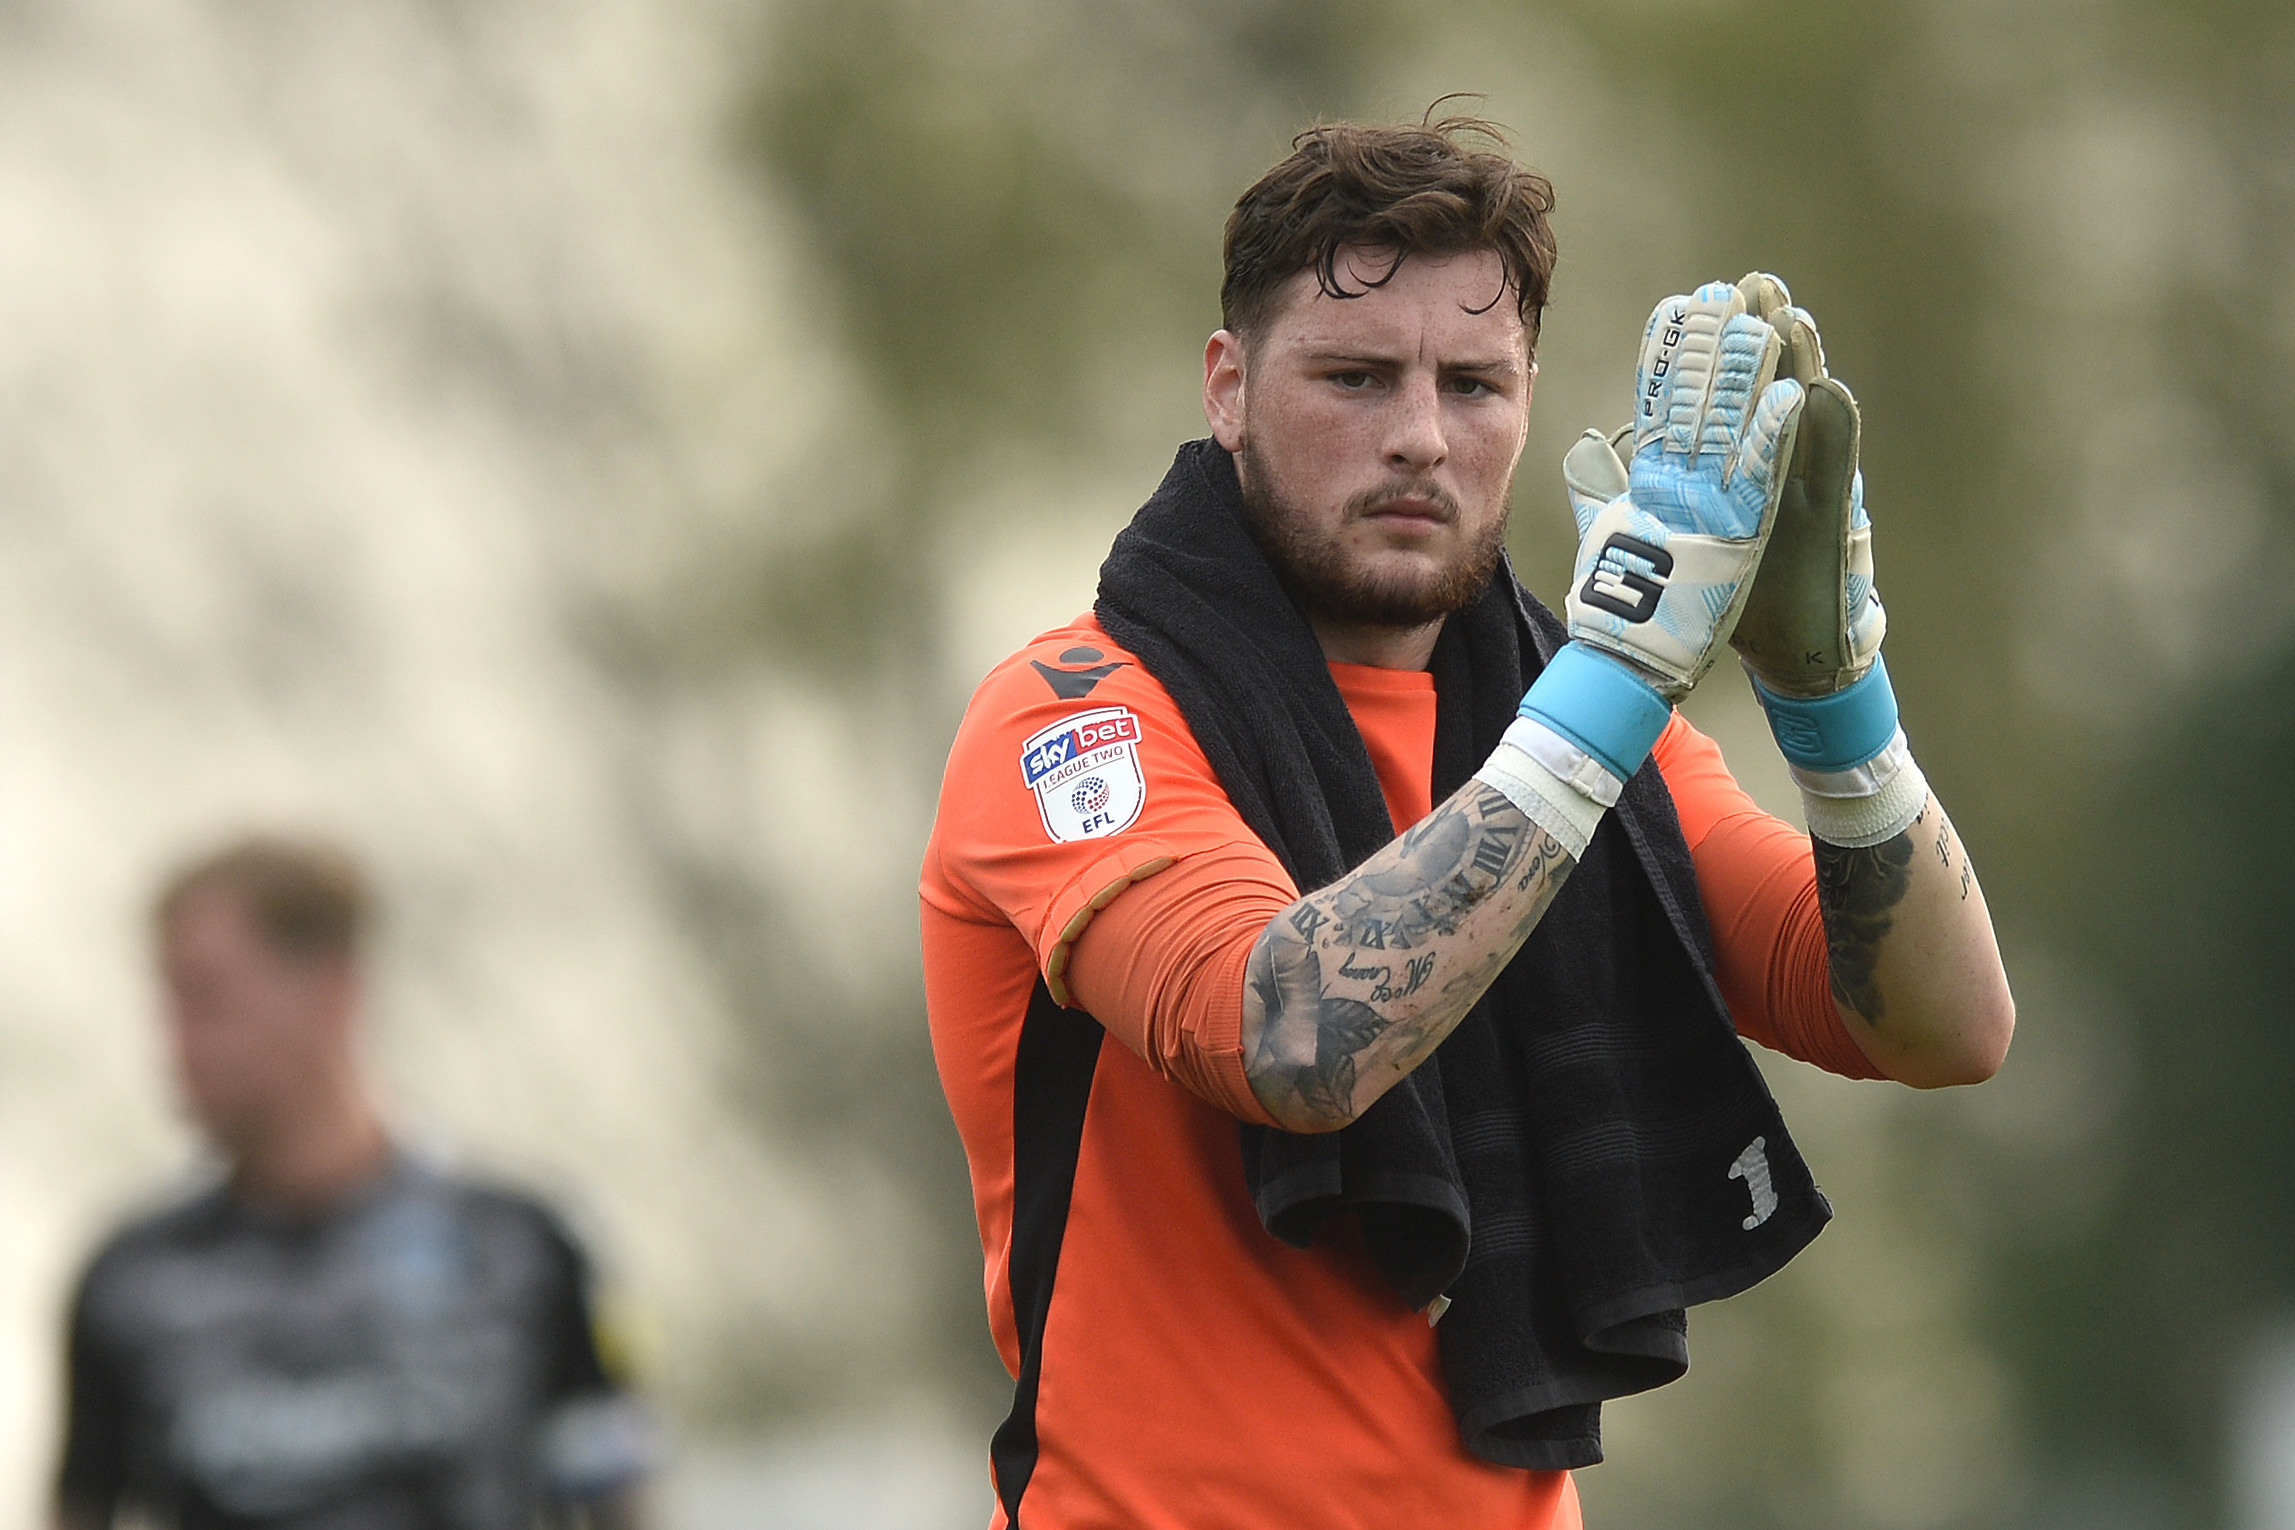 Gratitude - Colchester United keeper Ethan Ross applauds the fans after making his debut Picture: RICHARD BLAXALL